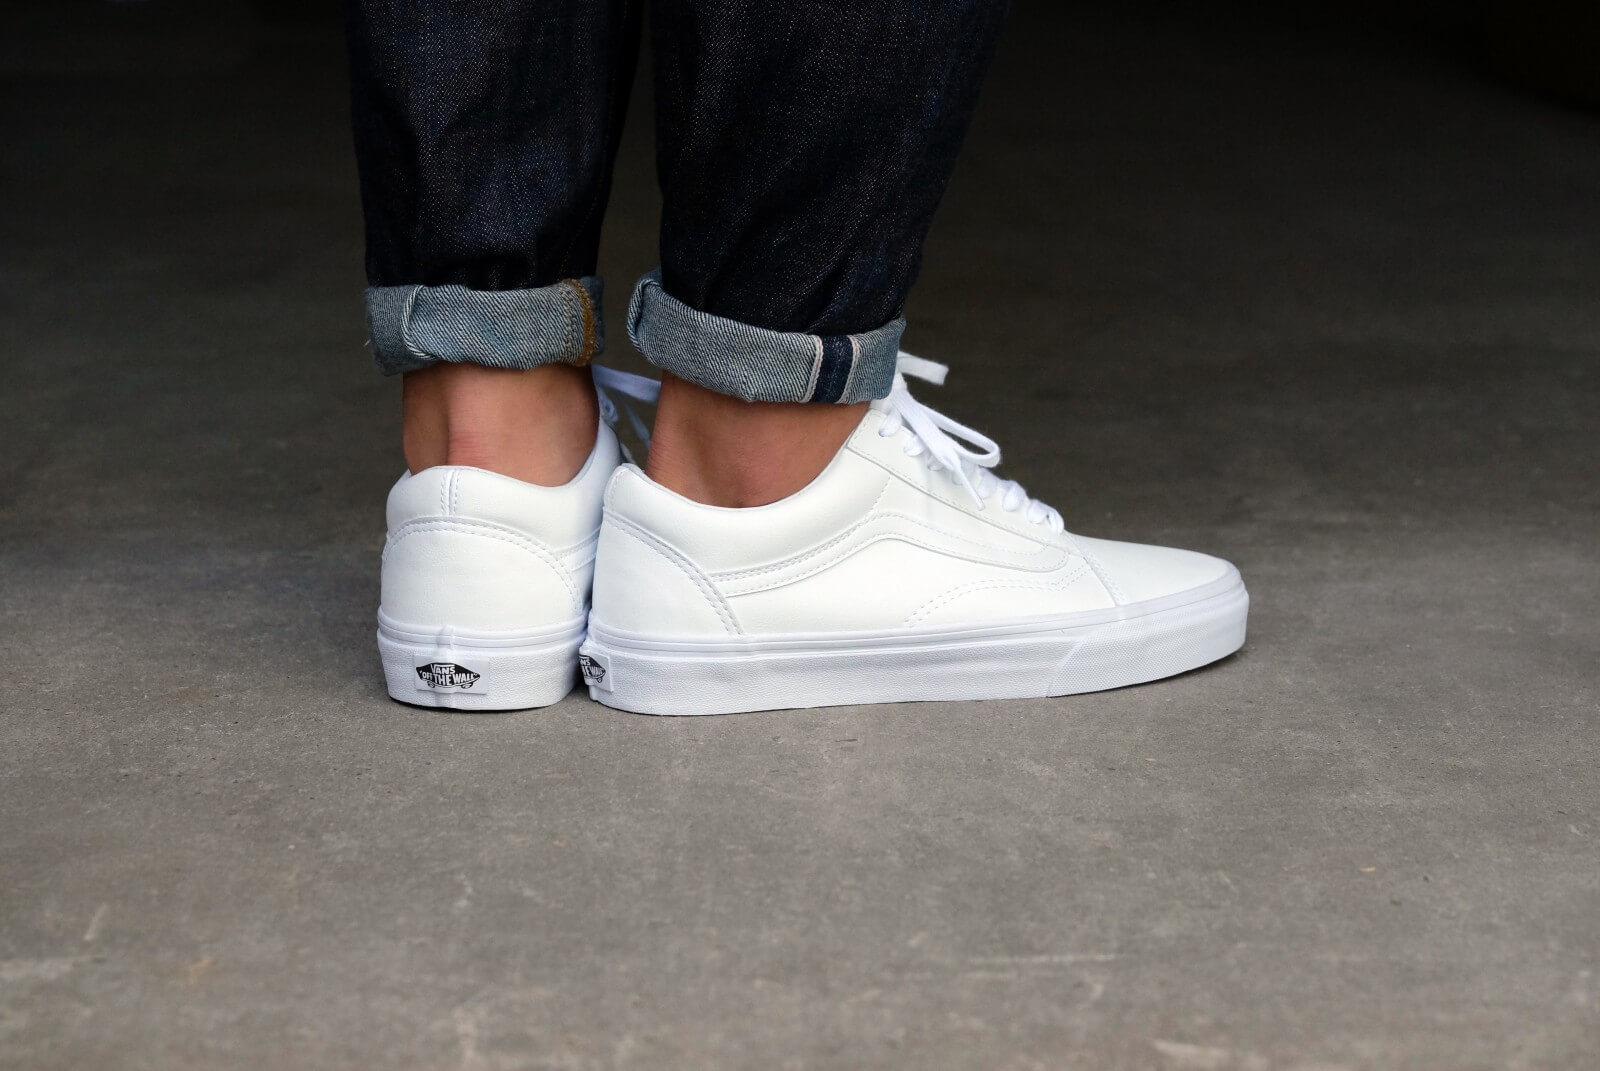 Vans Old Skool Classic Tumble True White Vn0a38g1odj